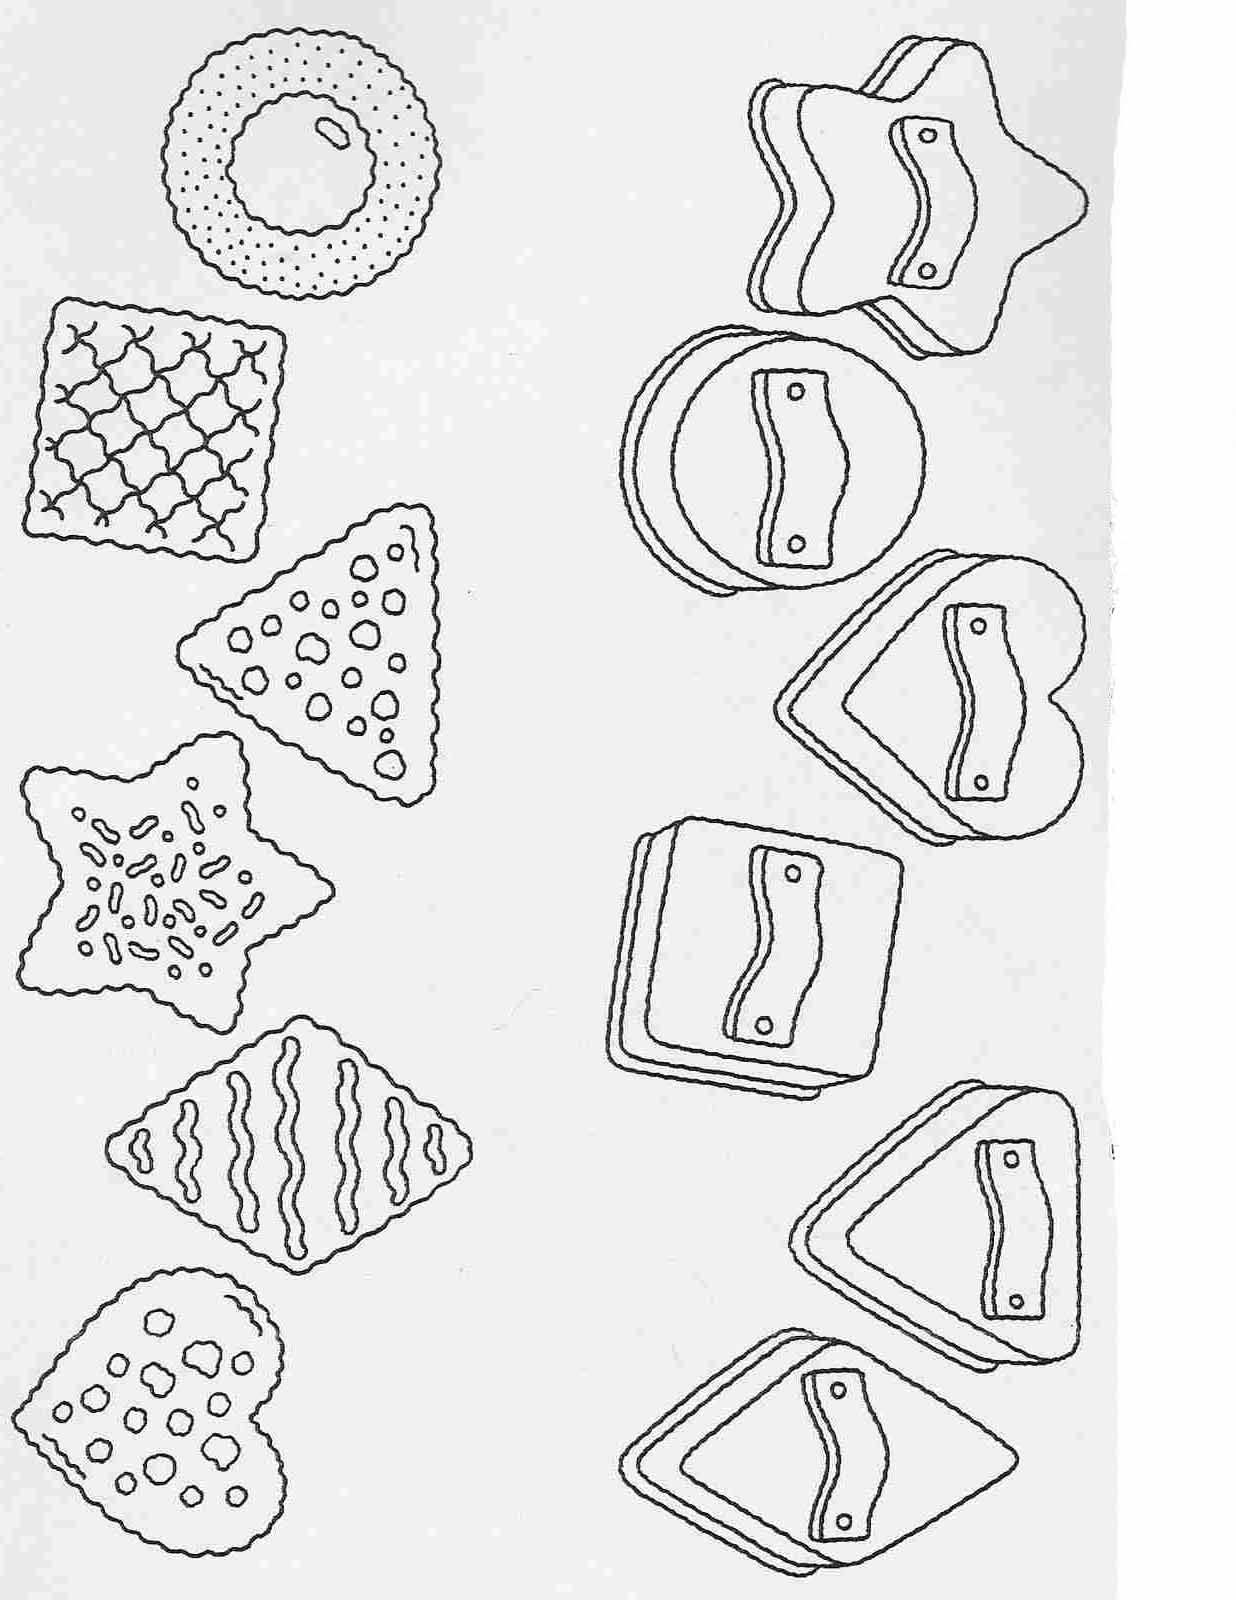 Elementary school worksheets complete and coloring 48 activities elementary school worksheets complete and coloring 48 robcynllc Image collections